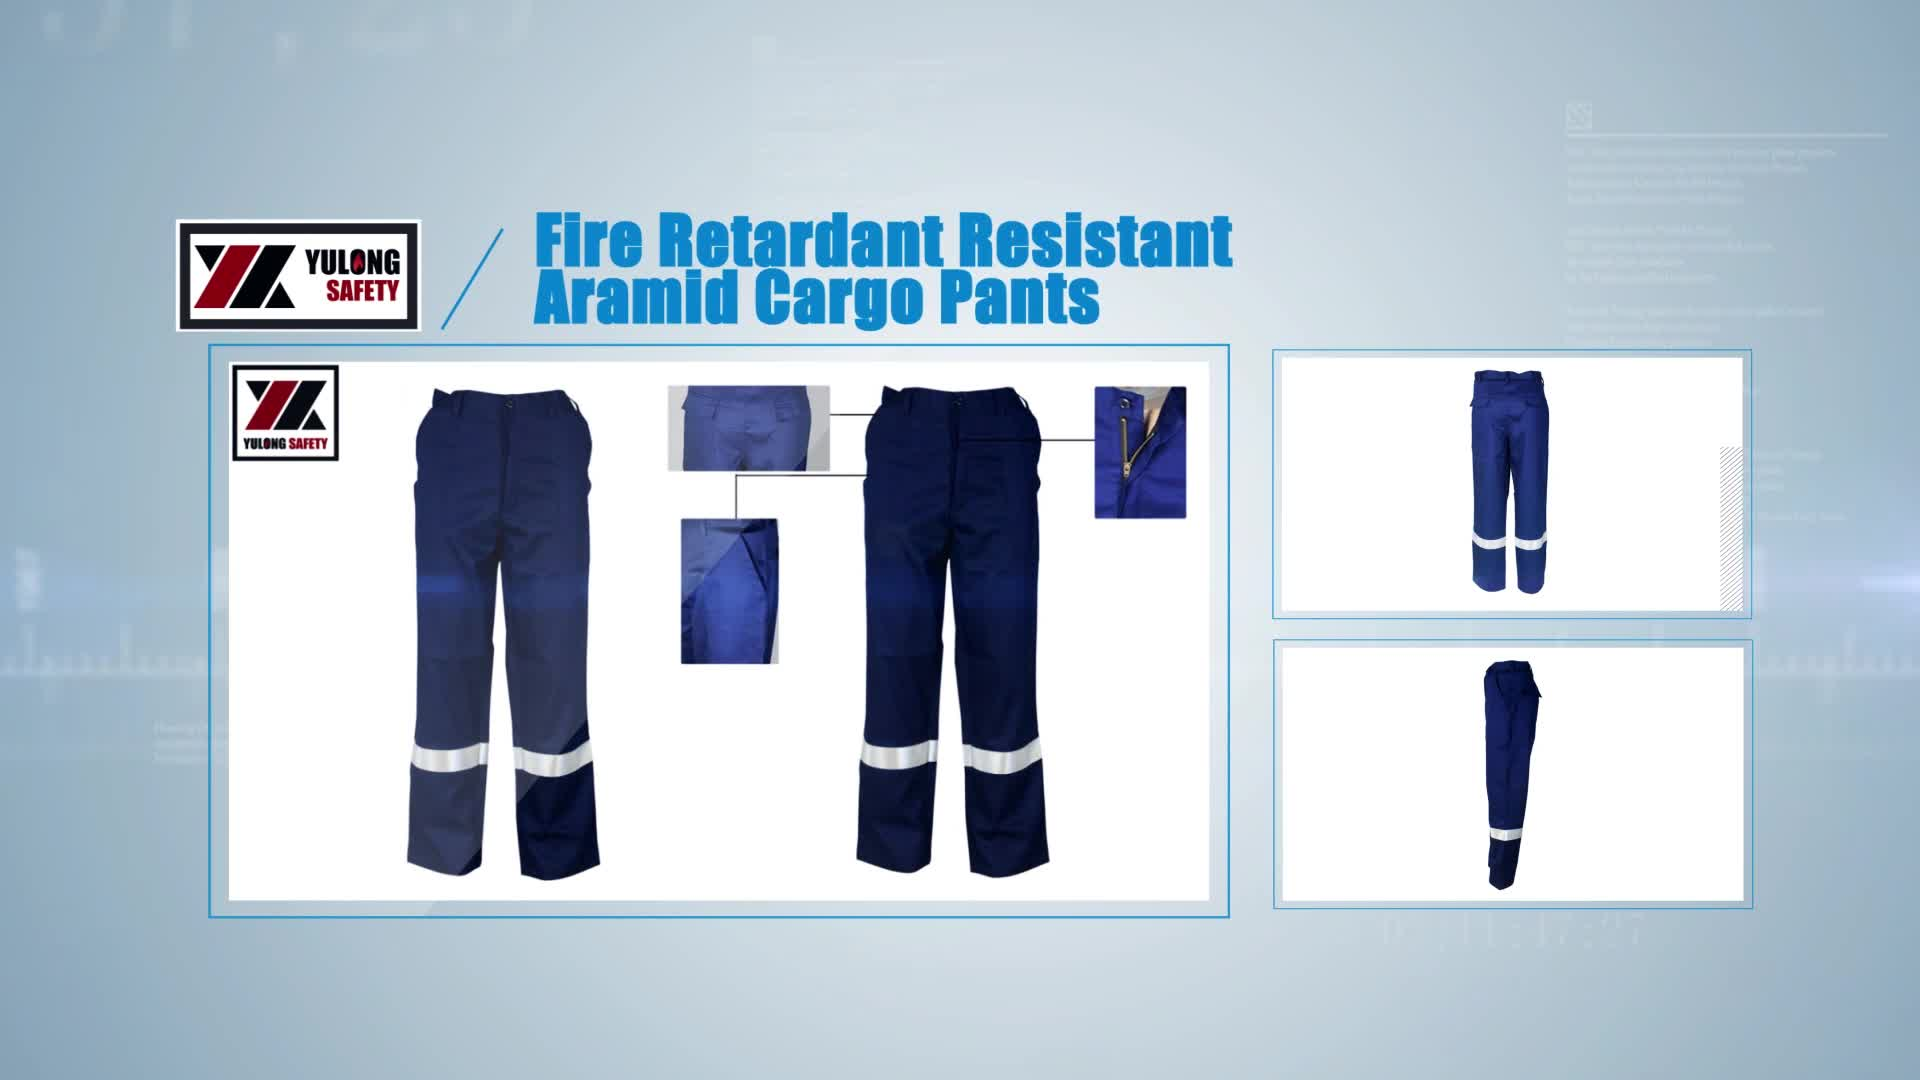 Custom Outdoor Flame Resistant Industrial Cargo Work Pants For Men